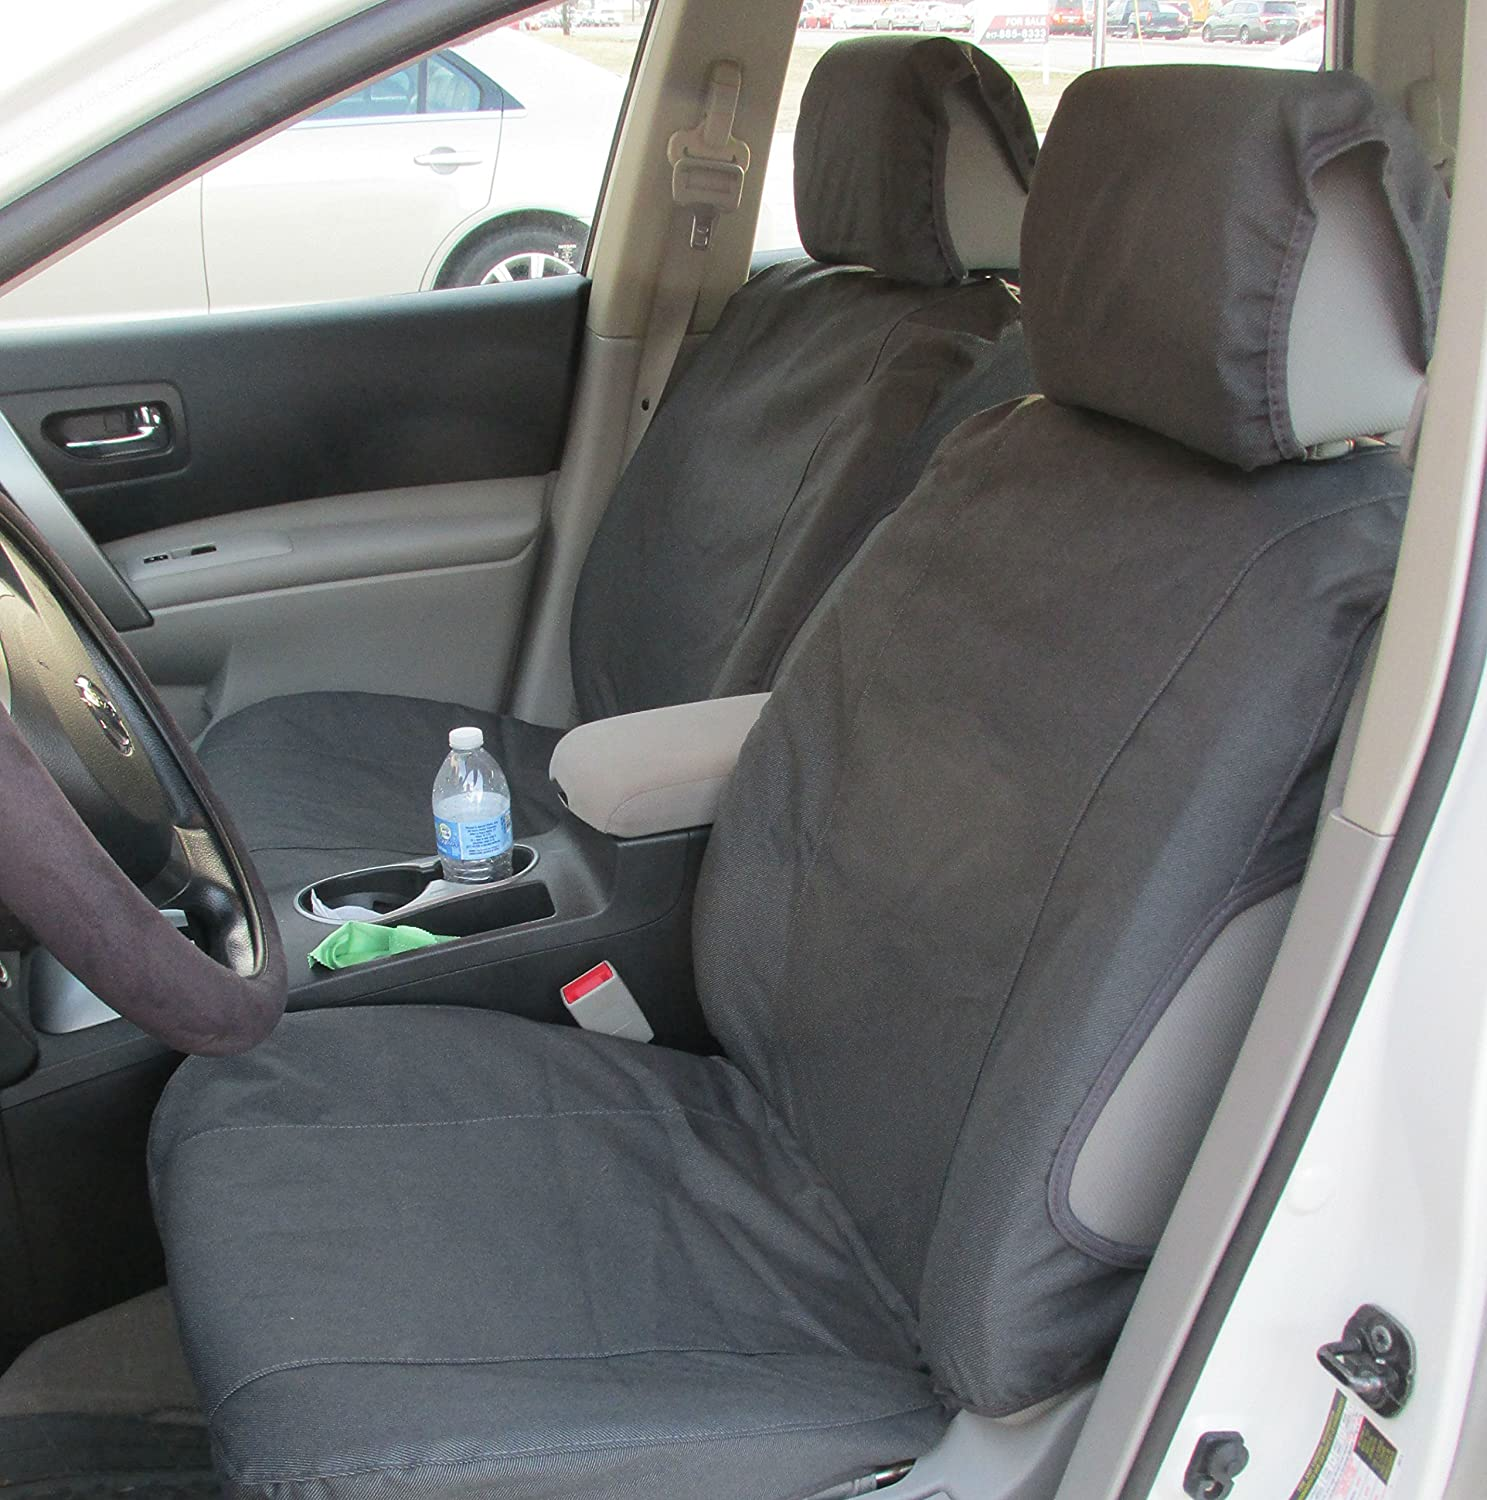 Nissan Rogue Seating >> Durafit Seat Covers Nissan Rogue Low Back Buckets Seat Covers Suitable For Seats With Side Airbags Graphite Automotive Velour